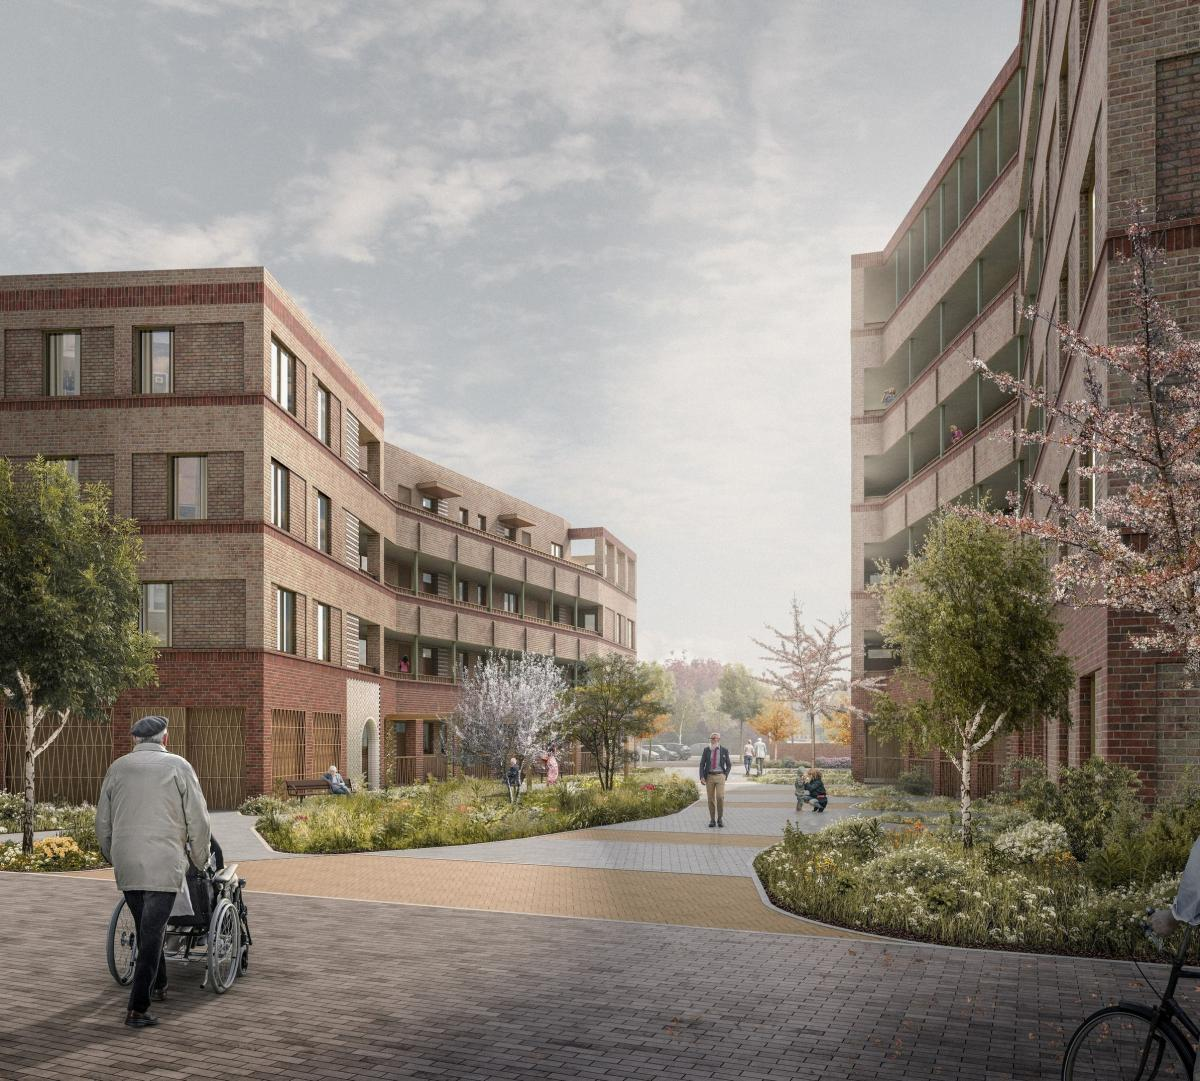 Computer generated image of how the new homes at Melfield Gardens may look